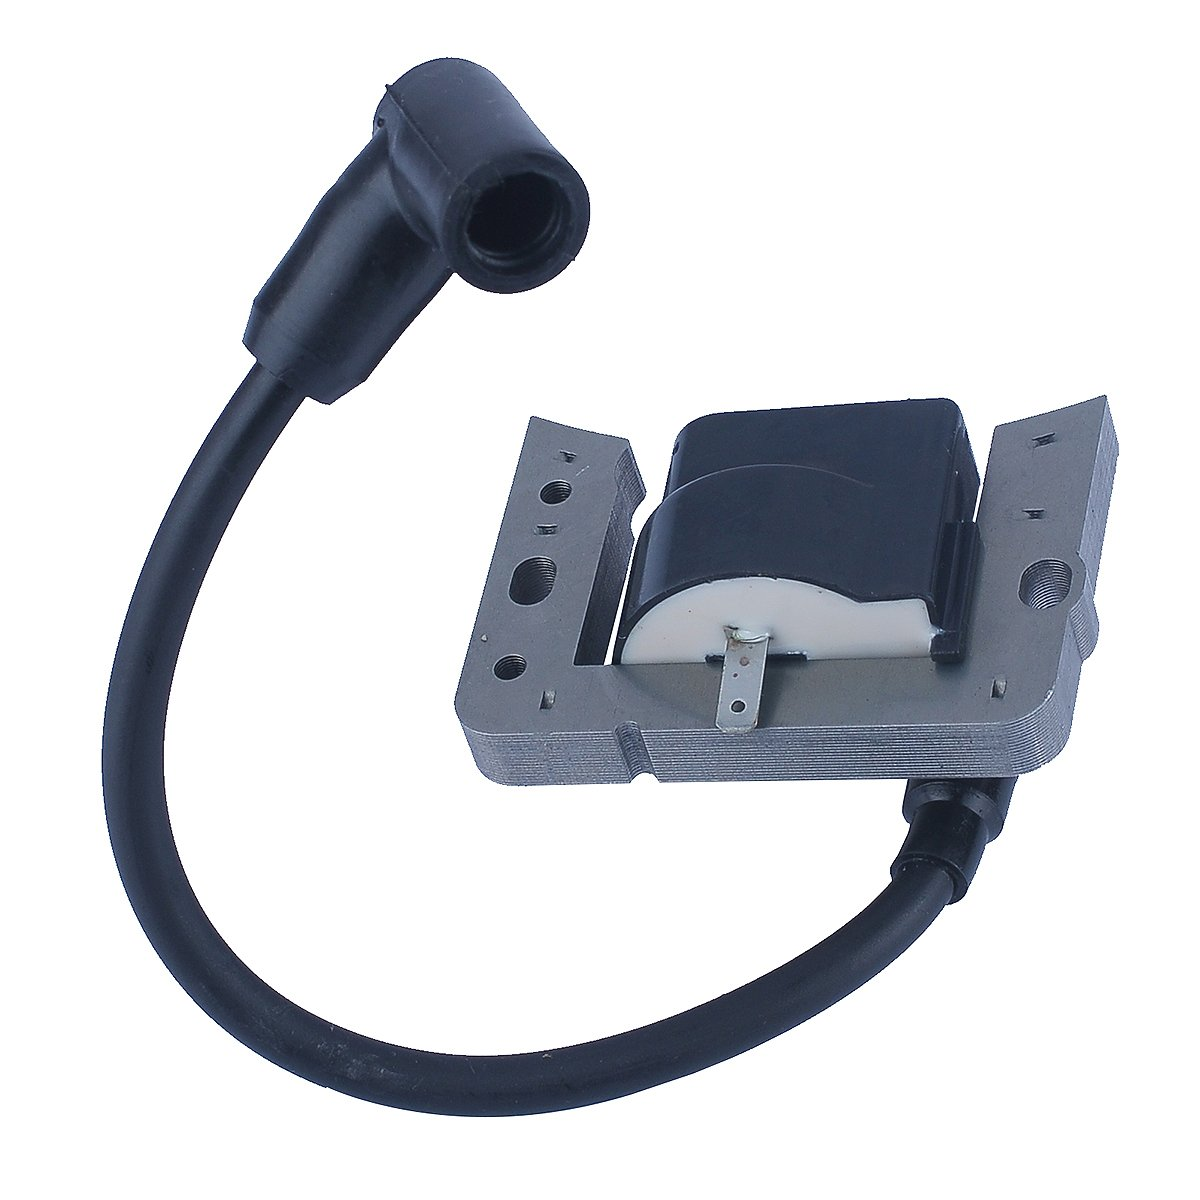 HIPA 34443 34443A 34443B 3443C 34443D Solid State Ignition Coil Module for Tecumseh AV520 LH195 OH195 TH139 TV085 TVM140 TVXL840 VLV126 LEV100 LEV115 LEV120 LV148A LV195EA OVRM105 OVRM120